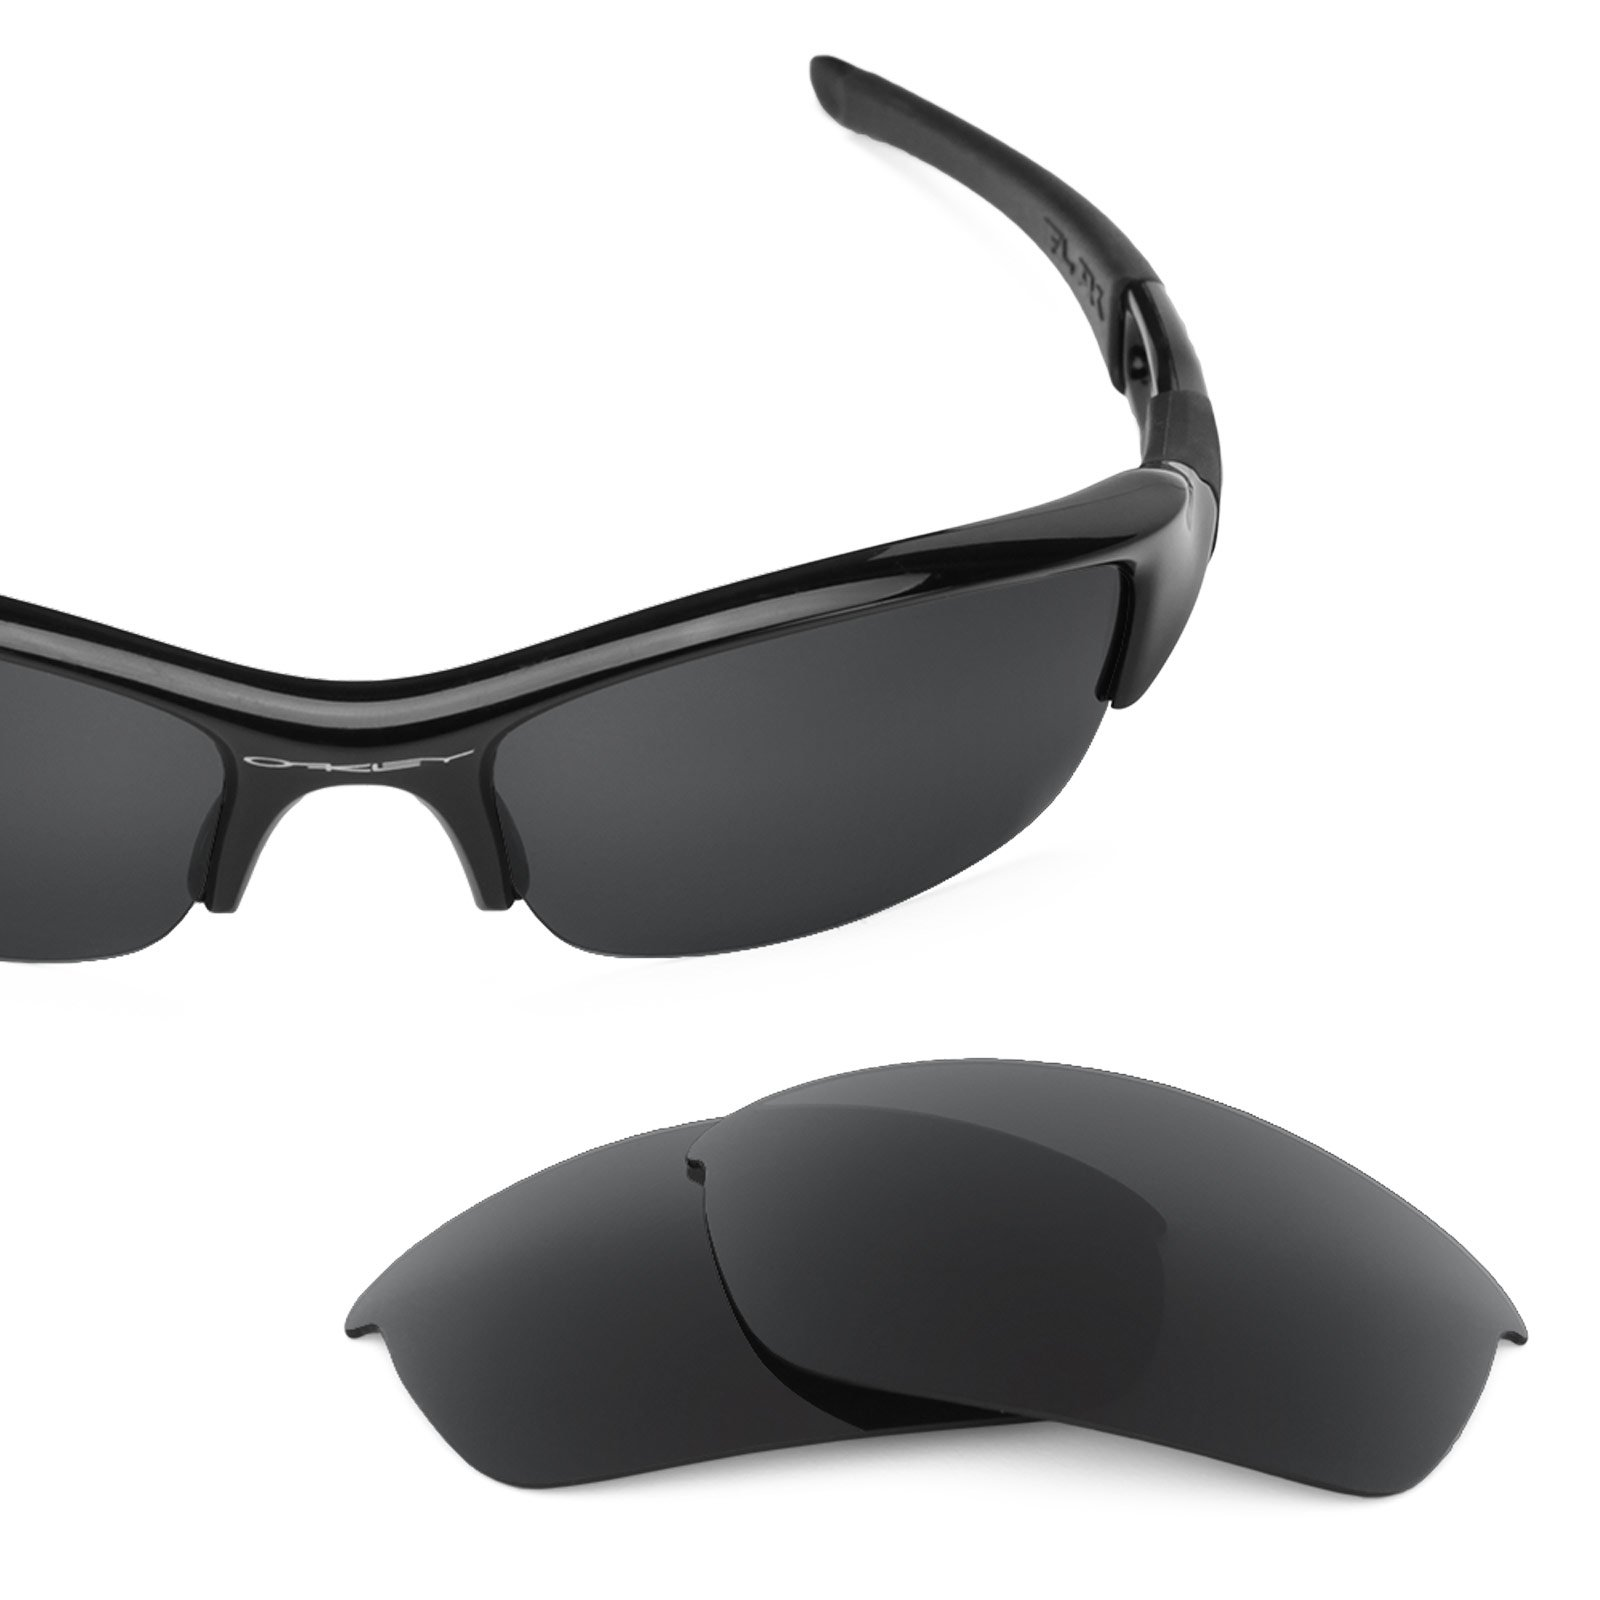 Revant Replacement Lenses for Oakley Flak Jacket 2 Pair Combo Pack K001 by Revant (Image #2)